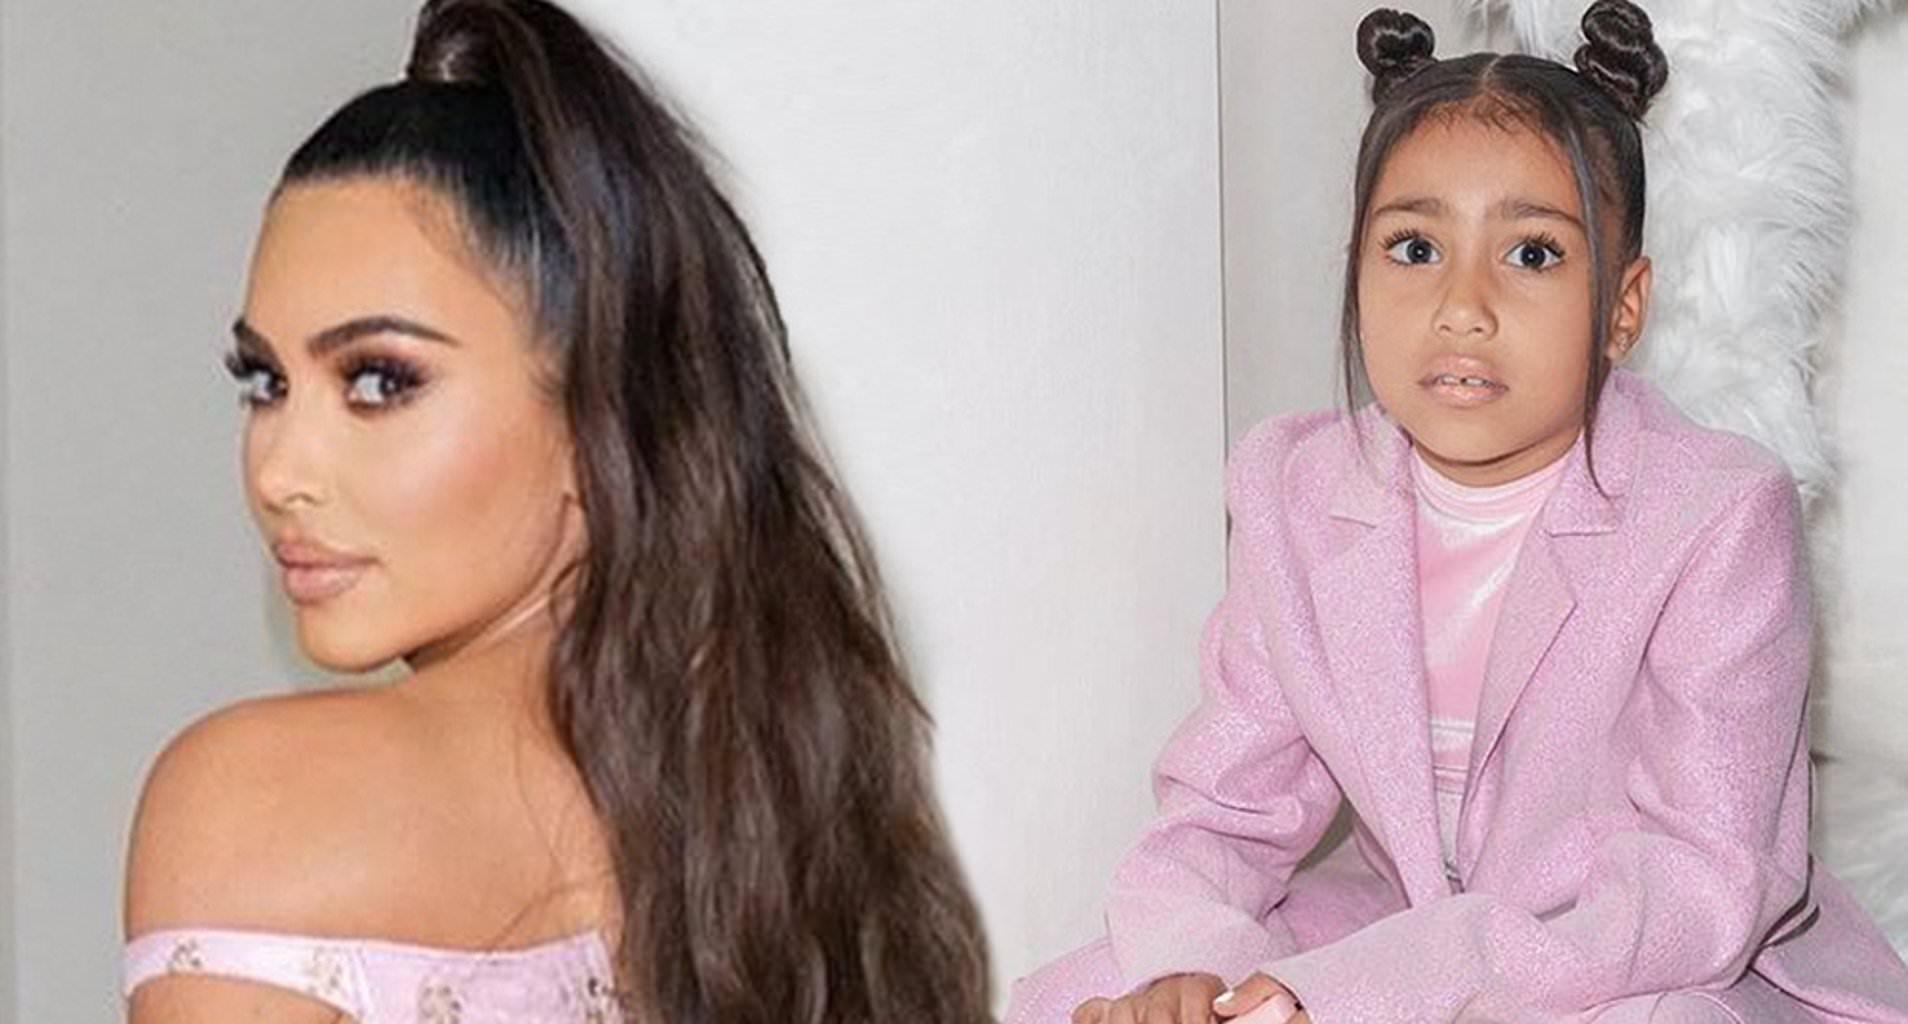 KUWK: Here's How Kim Kardashian Feels About The Viral Video Of North Interrupting Her Makeup Tutorial - She Was Frustrated At First!